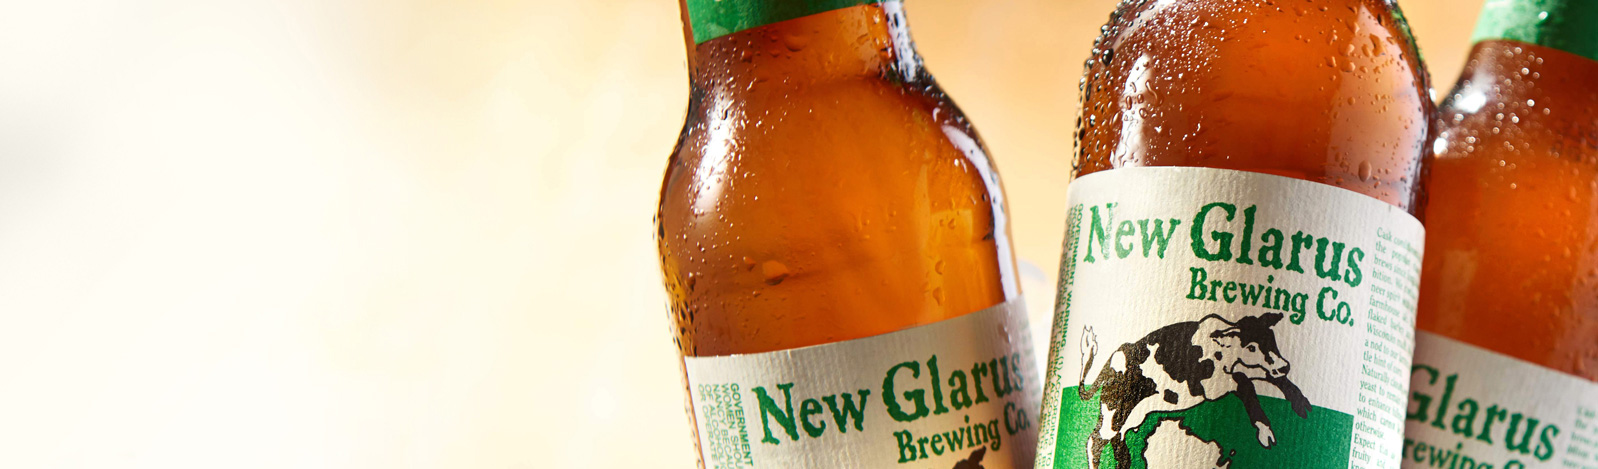 Craft beer label by Inland: New Glarus Spotted Cow